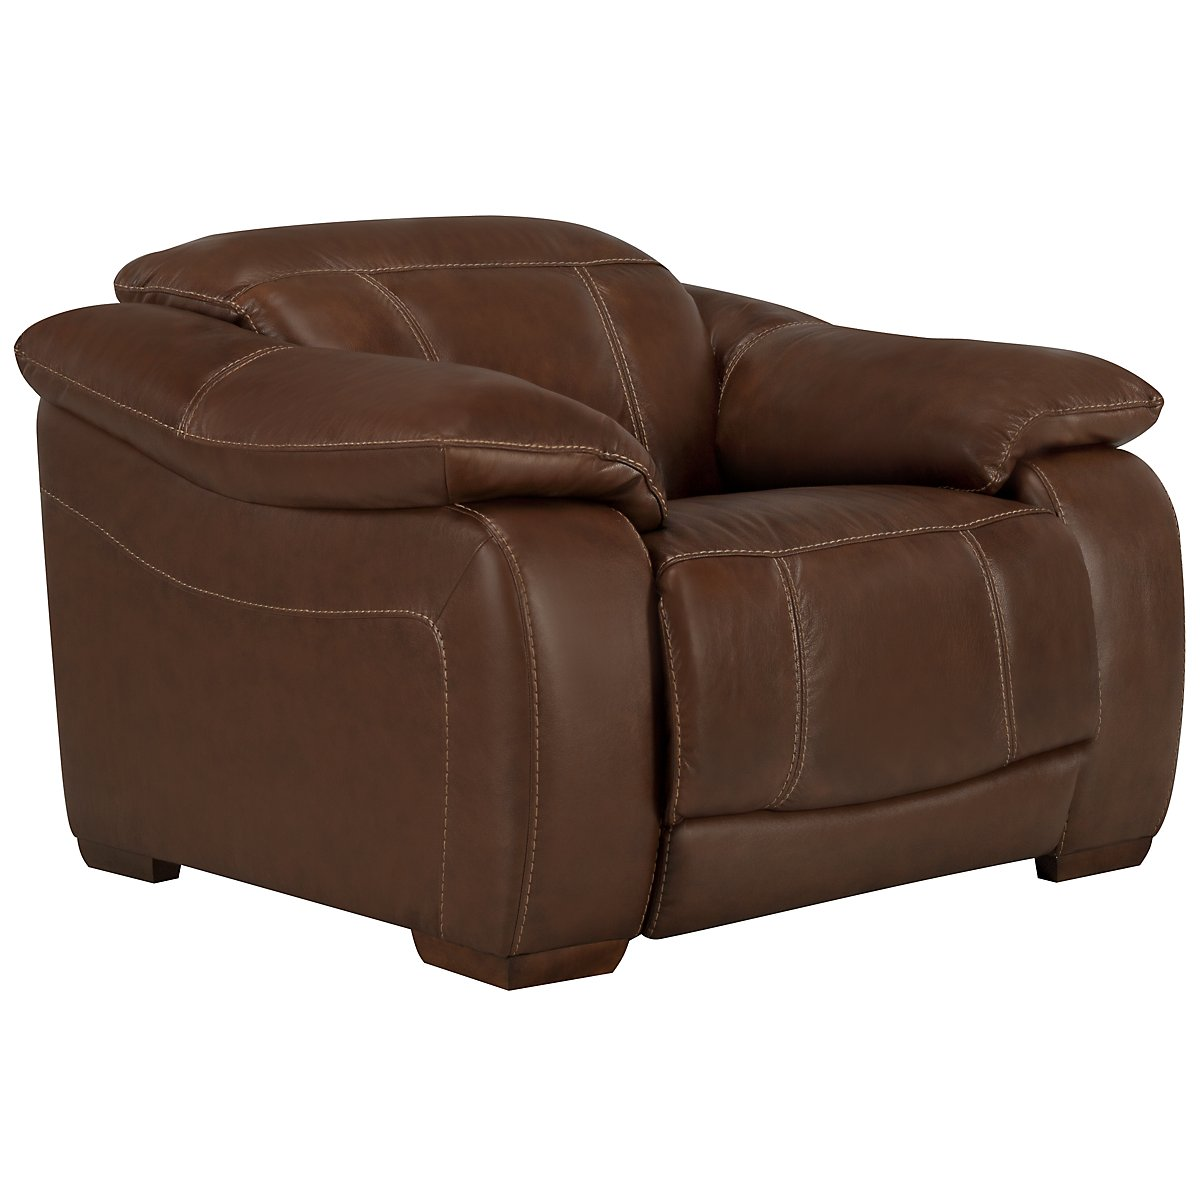 Orion Md Brown Leather & Bonded Leather Power Recliner